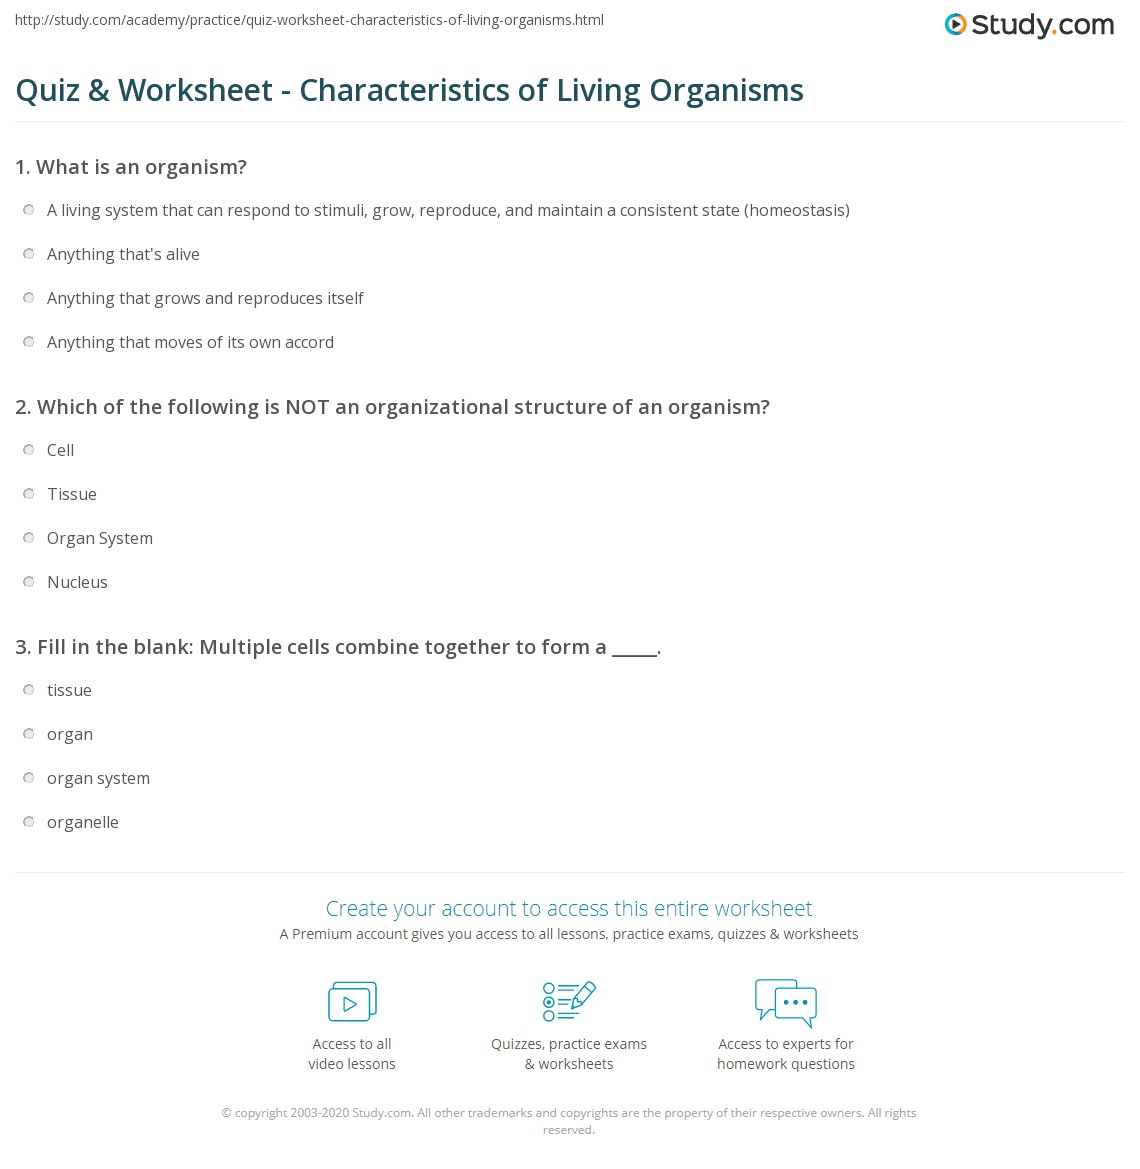 Worksheets Characteristics Of Living Things Worksheet quiz worksheet characteristics of living organisms study com print organization functions structure worksheet